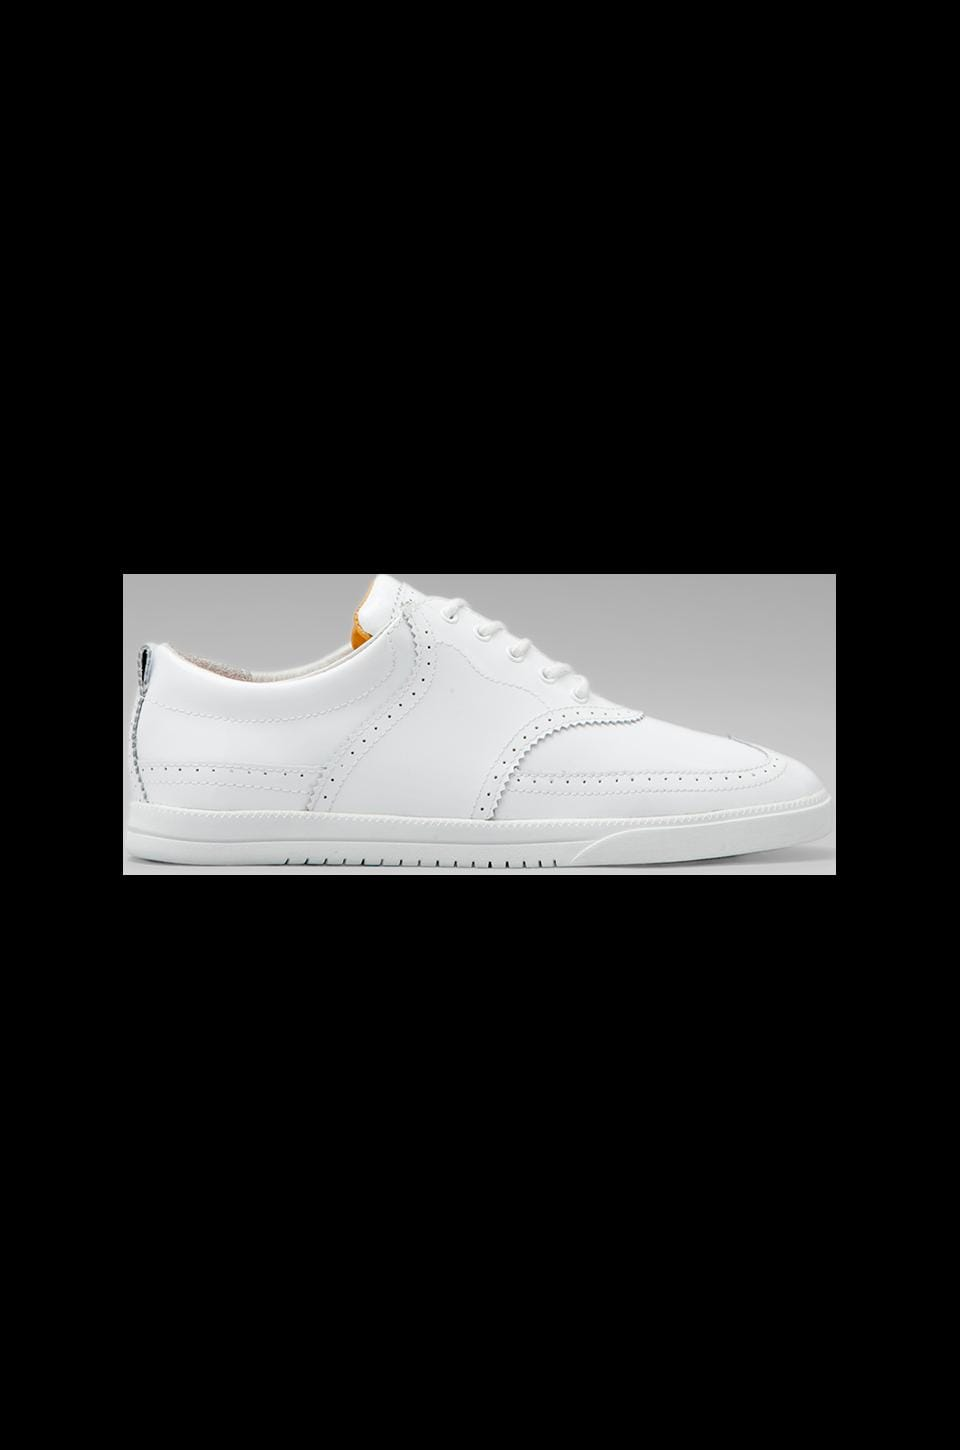 Clae Powell in White Patent Leather